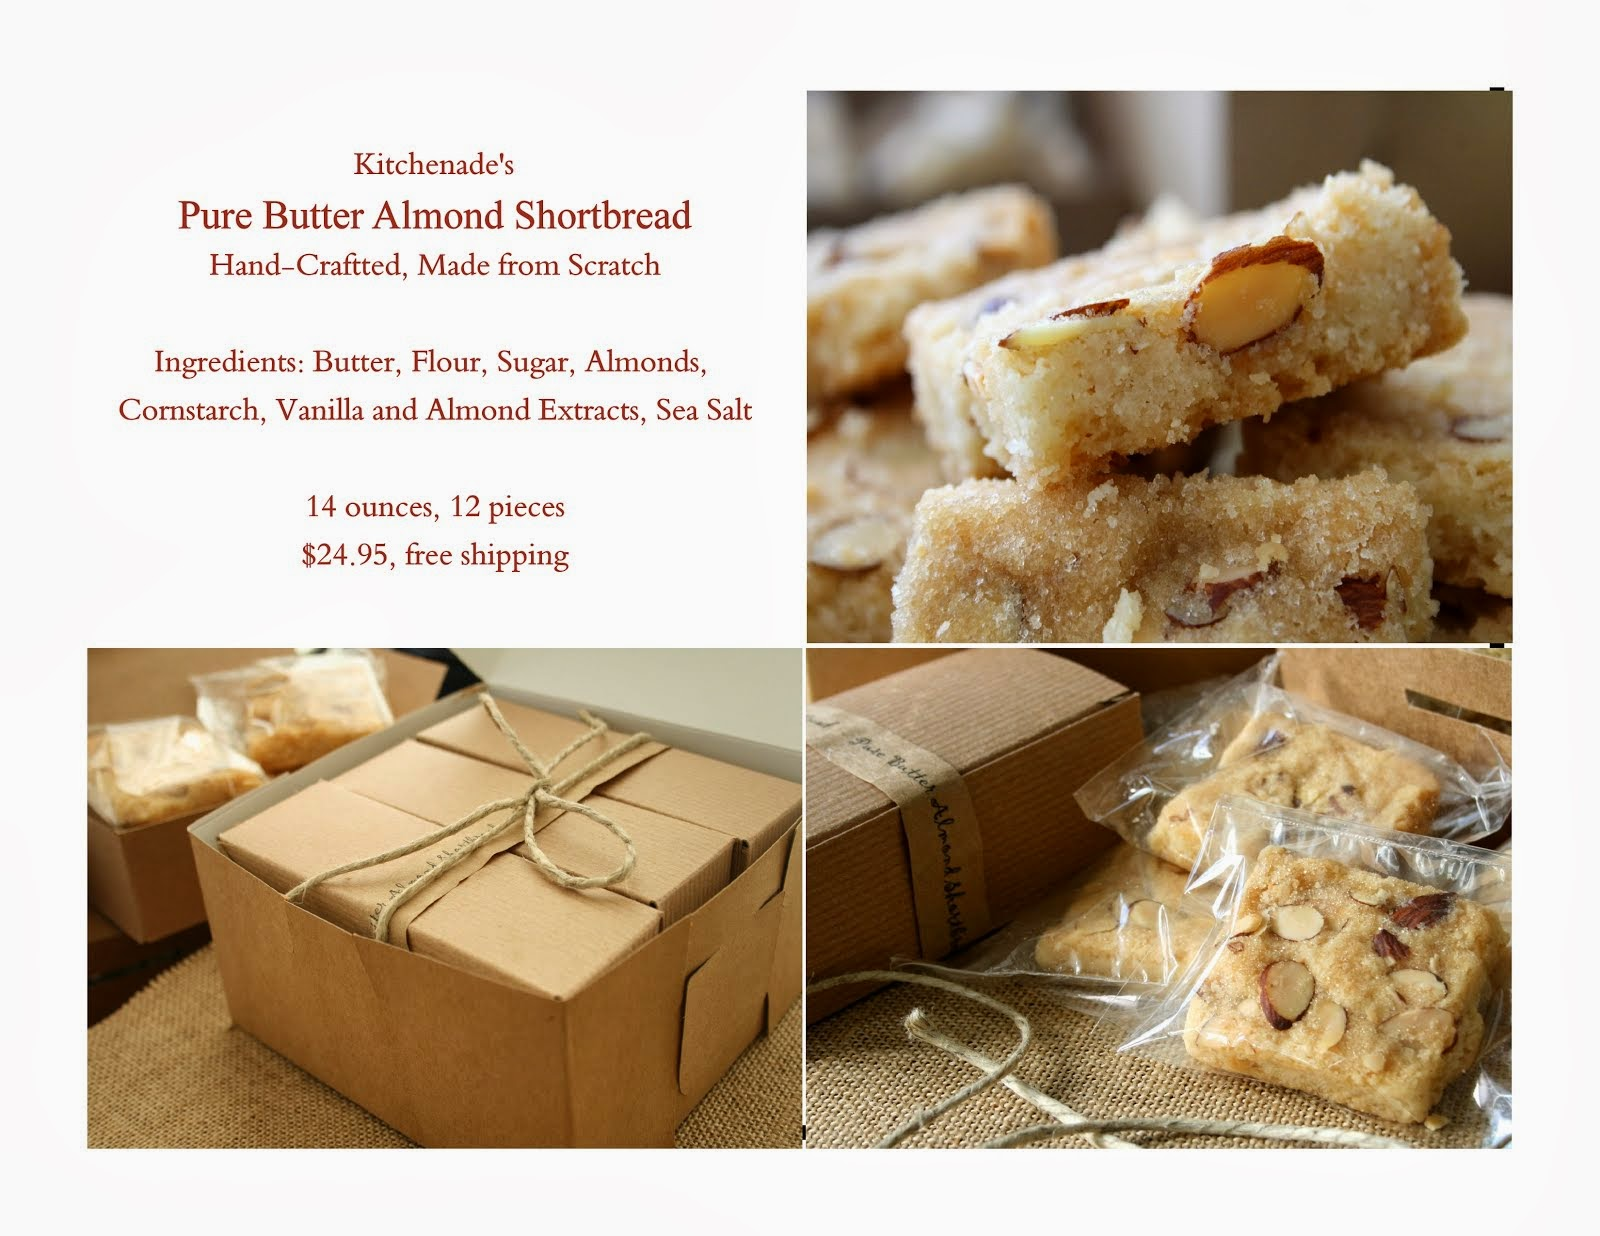 Kitchenade's Pure Butter Almond Shortbread